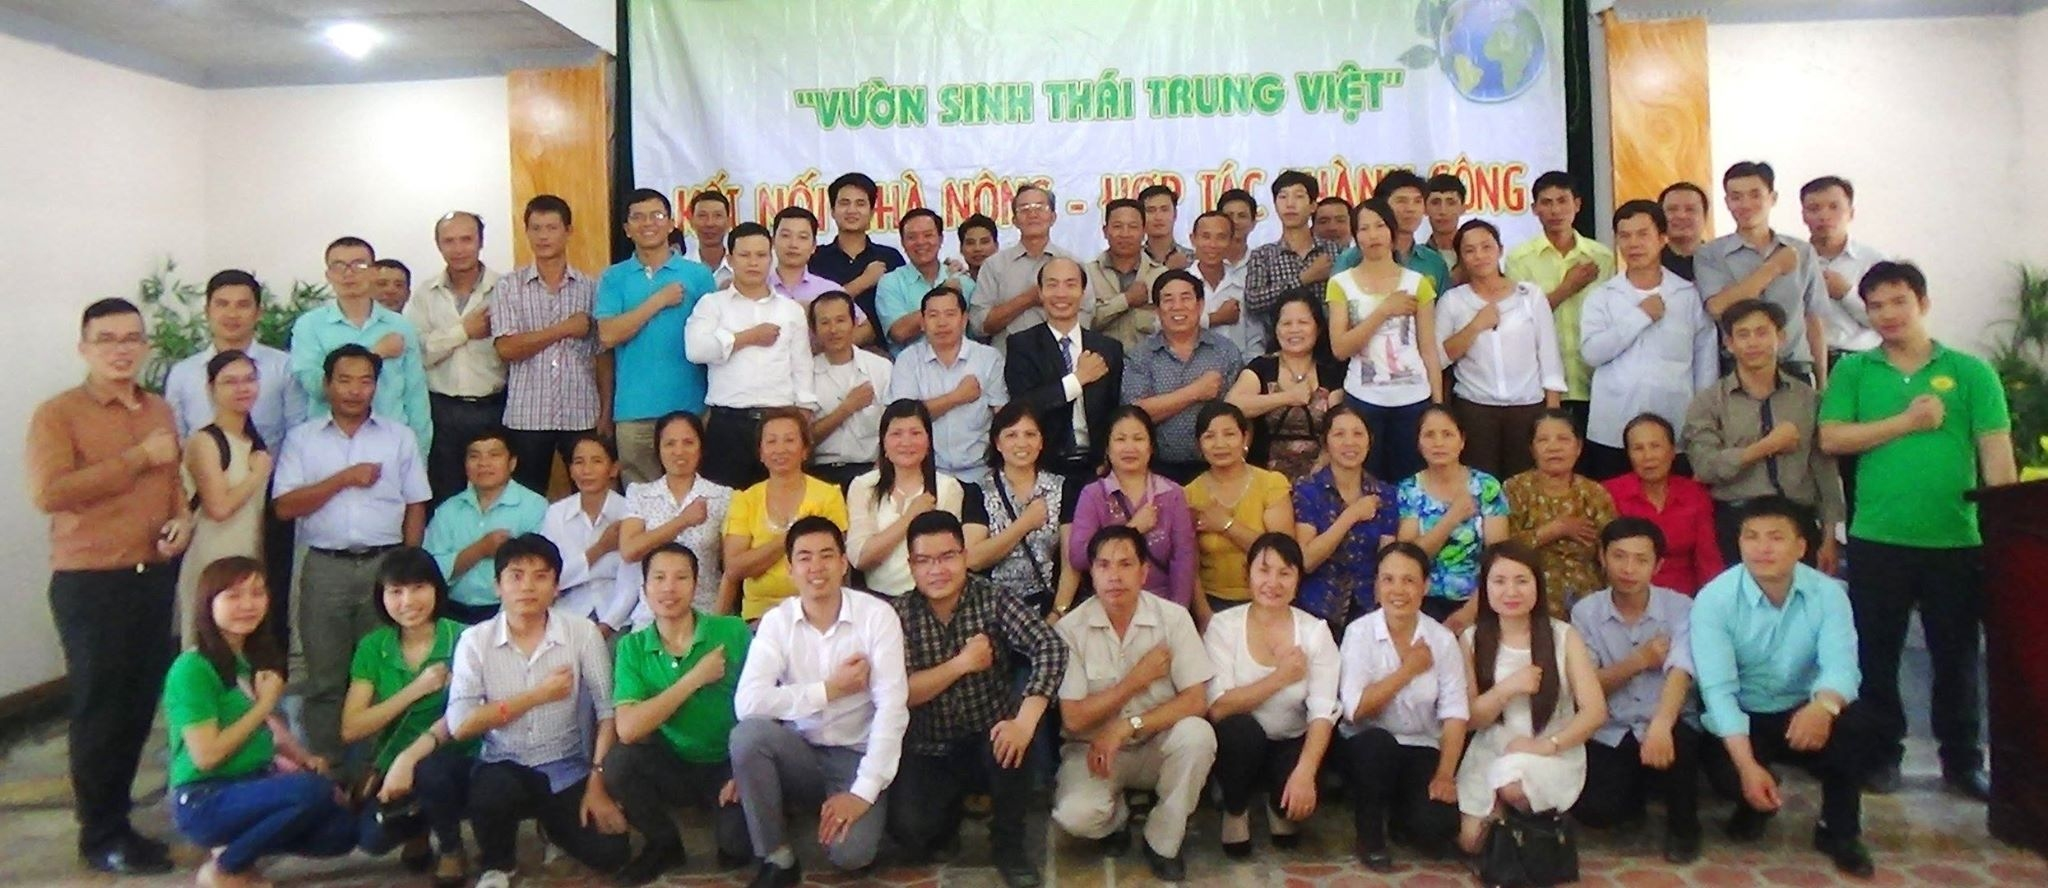 Clip: Welcome to Trung Viet